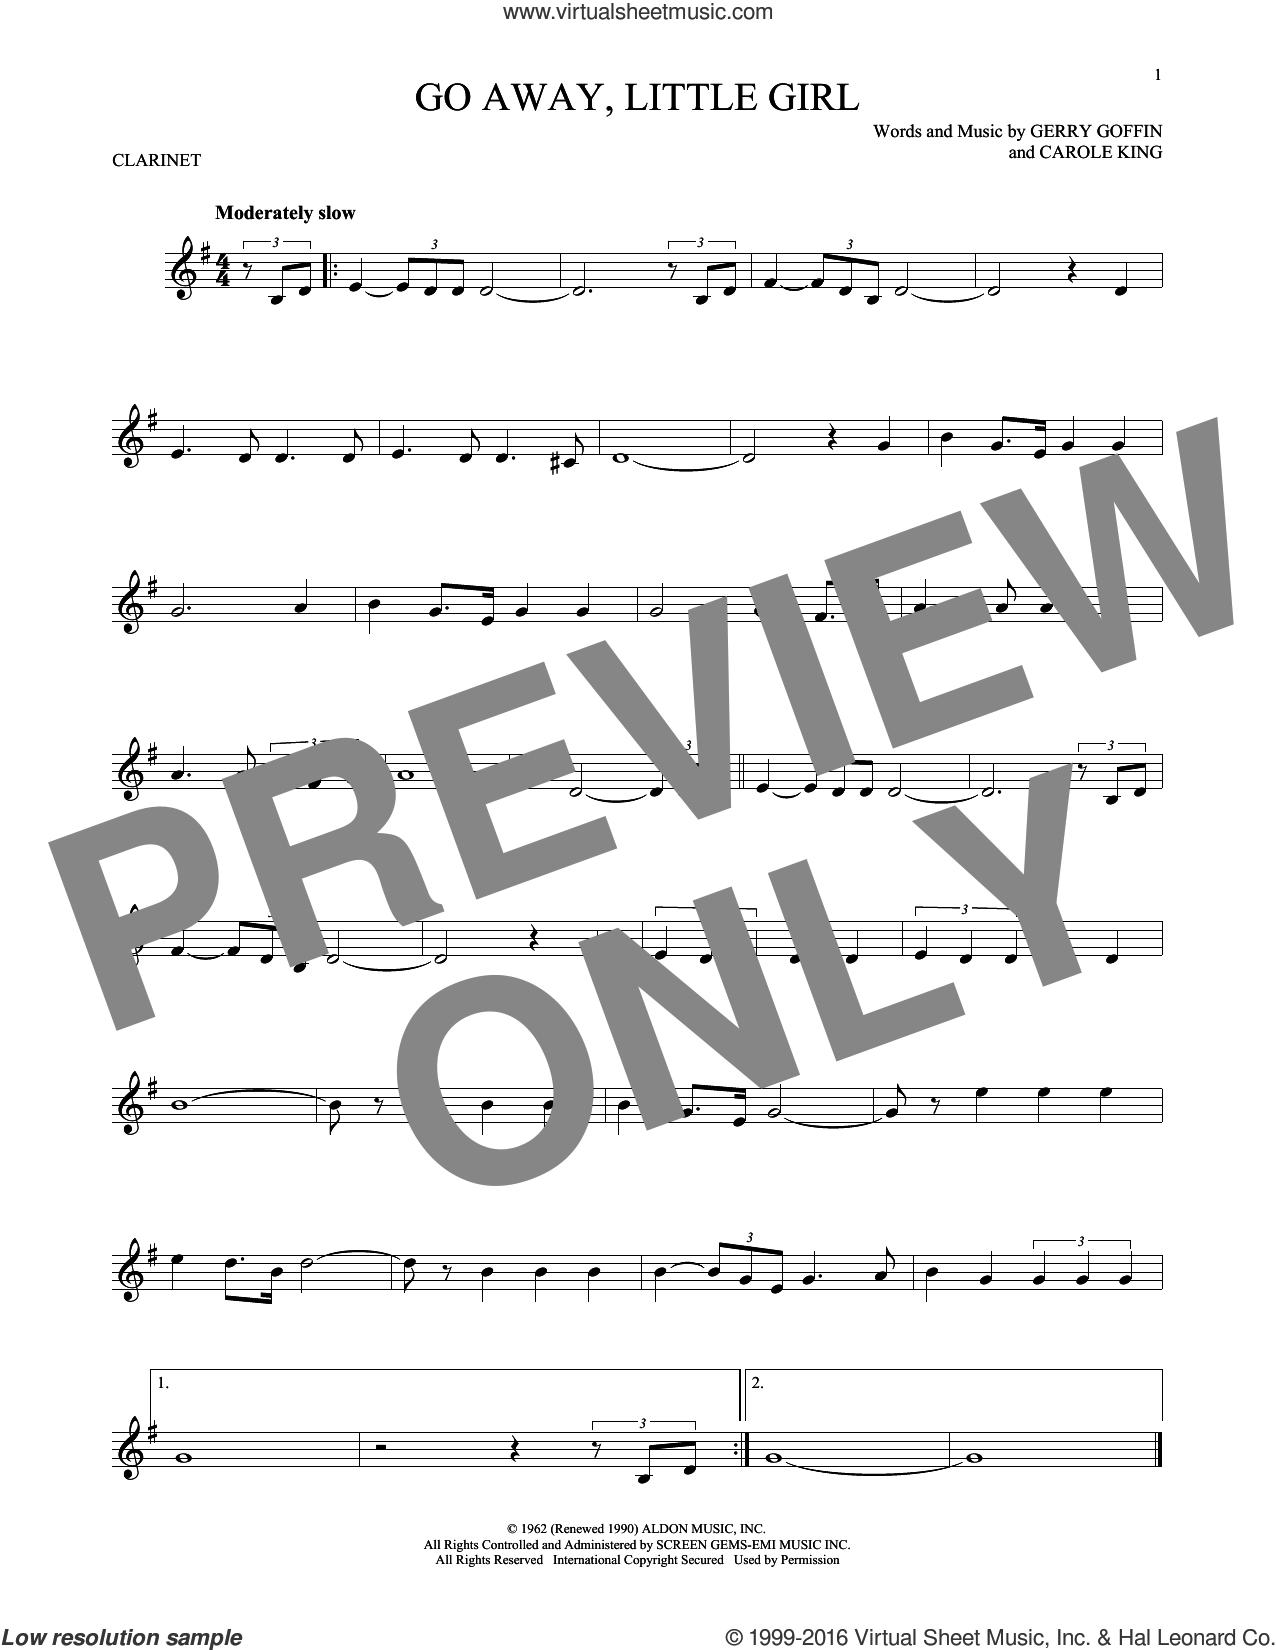 Go Away, Little Girl sheet music for clarinet solo by Donny Osmond, Steve Lawrence, Carole King and Gerry Goffin, intermediate. Score Image Preview.